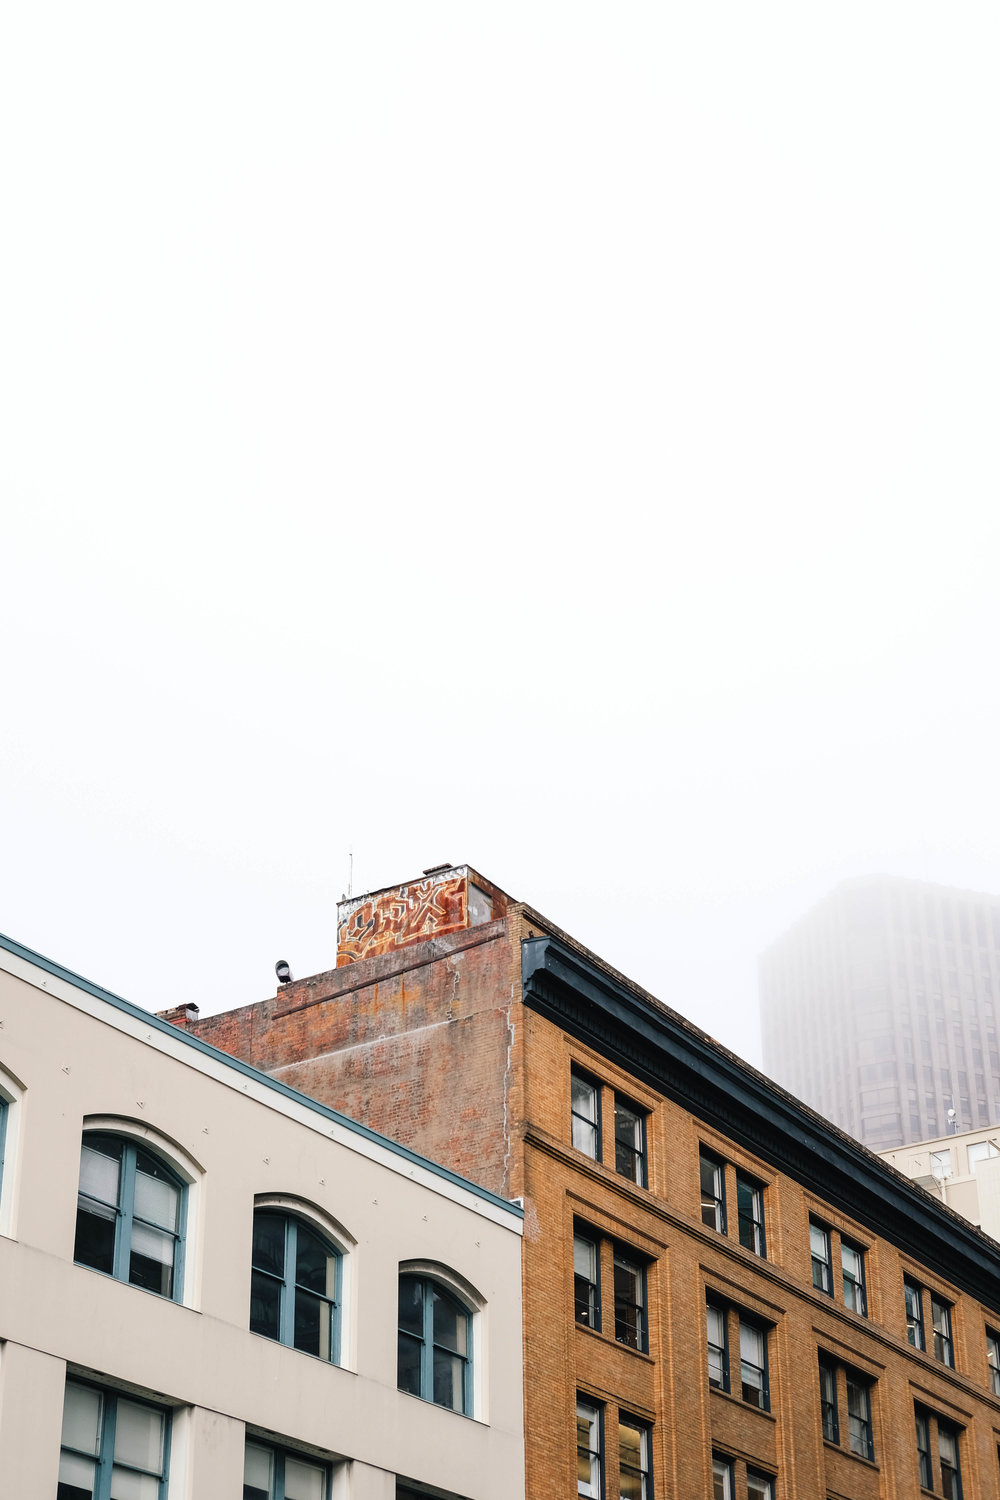 "<p style=""font-family:brandon-grotesque;font-weight:500; font-size:11px; text-center:left; color:light grey;letter-spacing: 1px"">AUGUST 25, 2017 • FOGGY LAYERS • 📍 San Francisco, CA</p>"